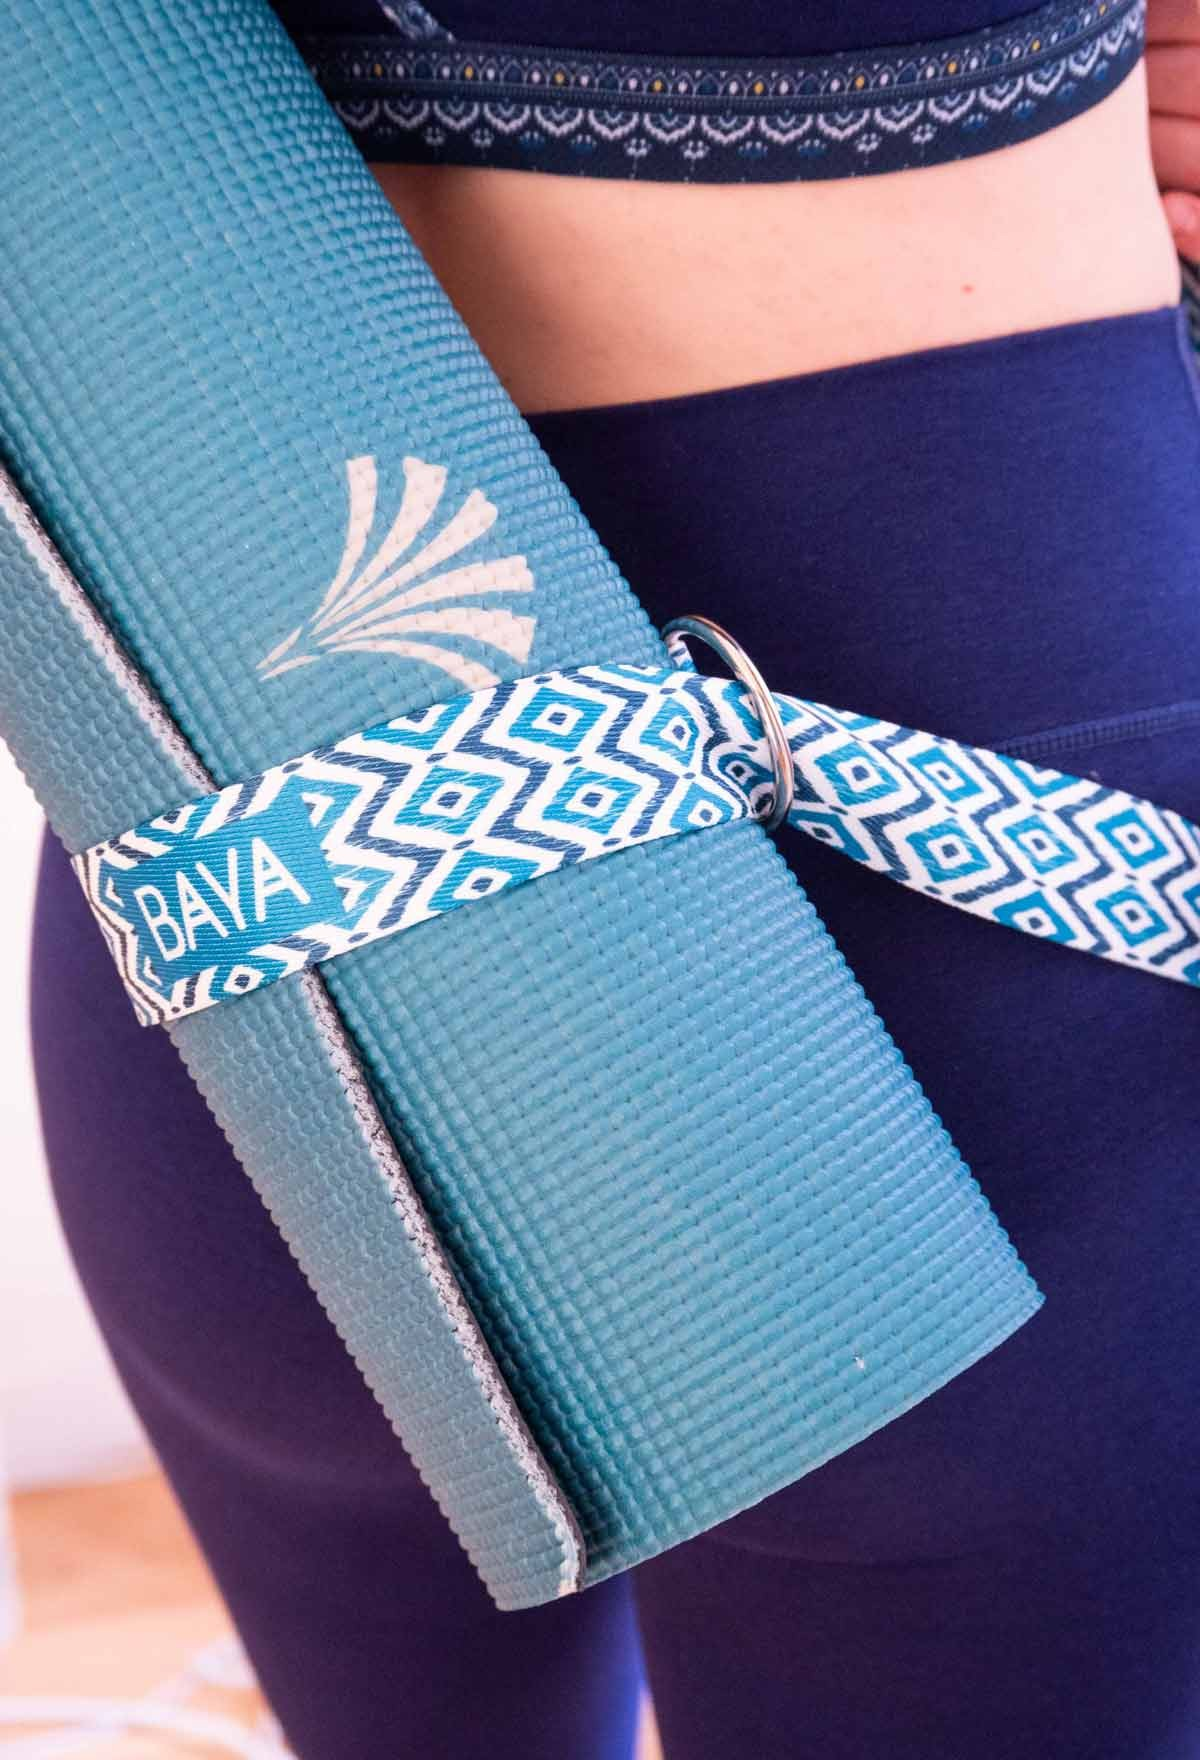 Sangle pour tapis de yoga - bleu